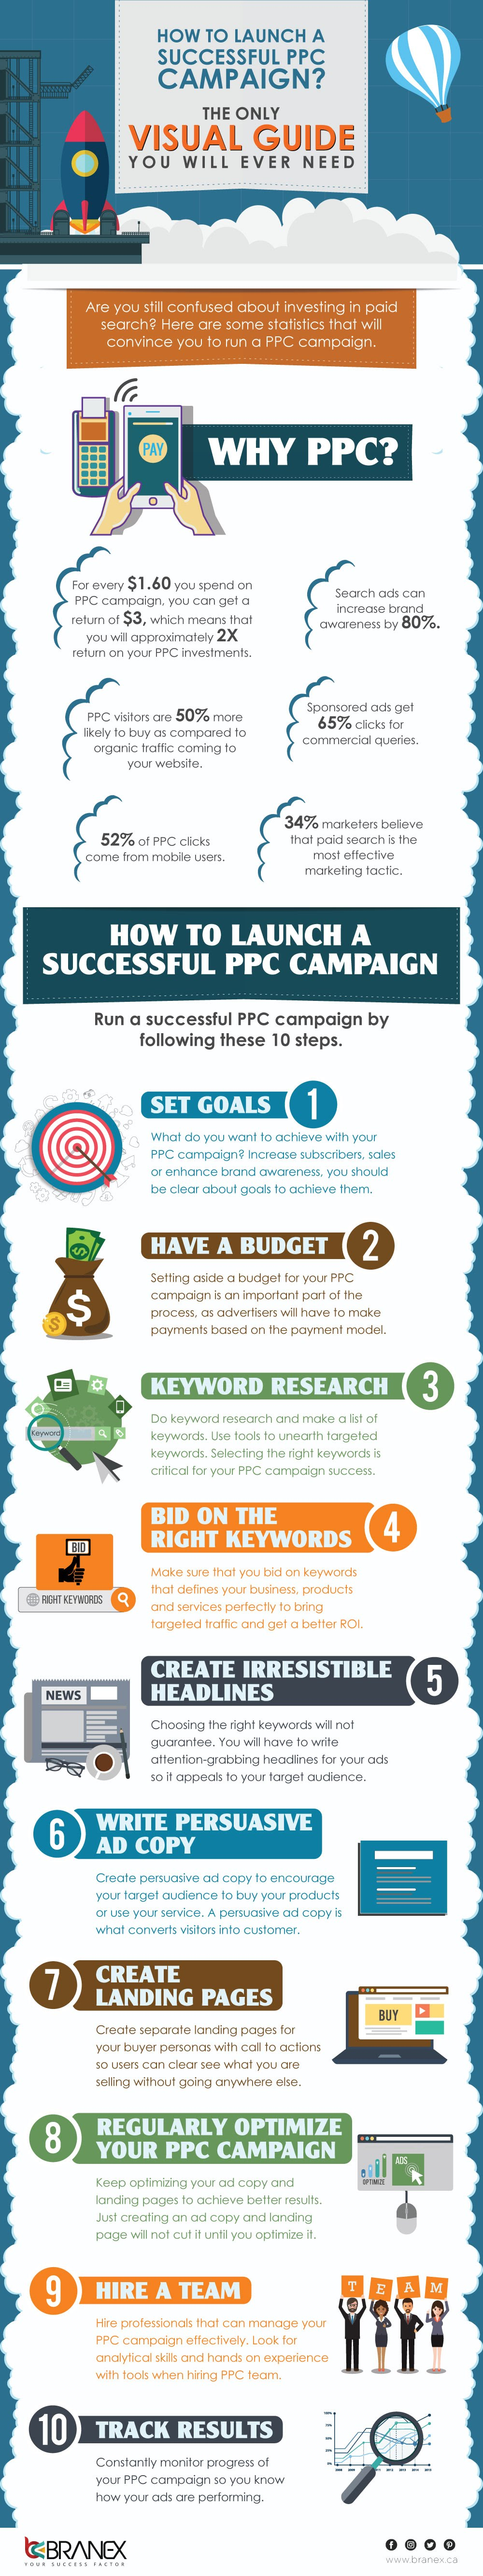 How To Launch A Successful PPC Campaign? - Infographic